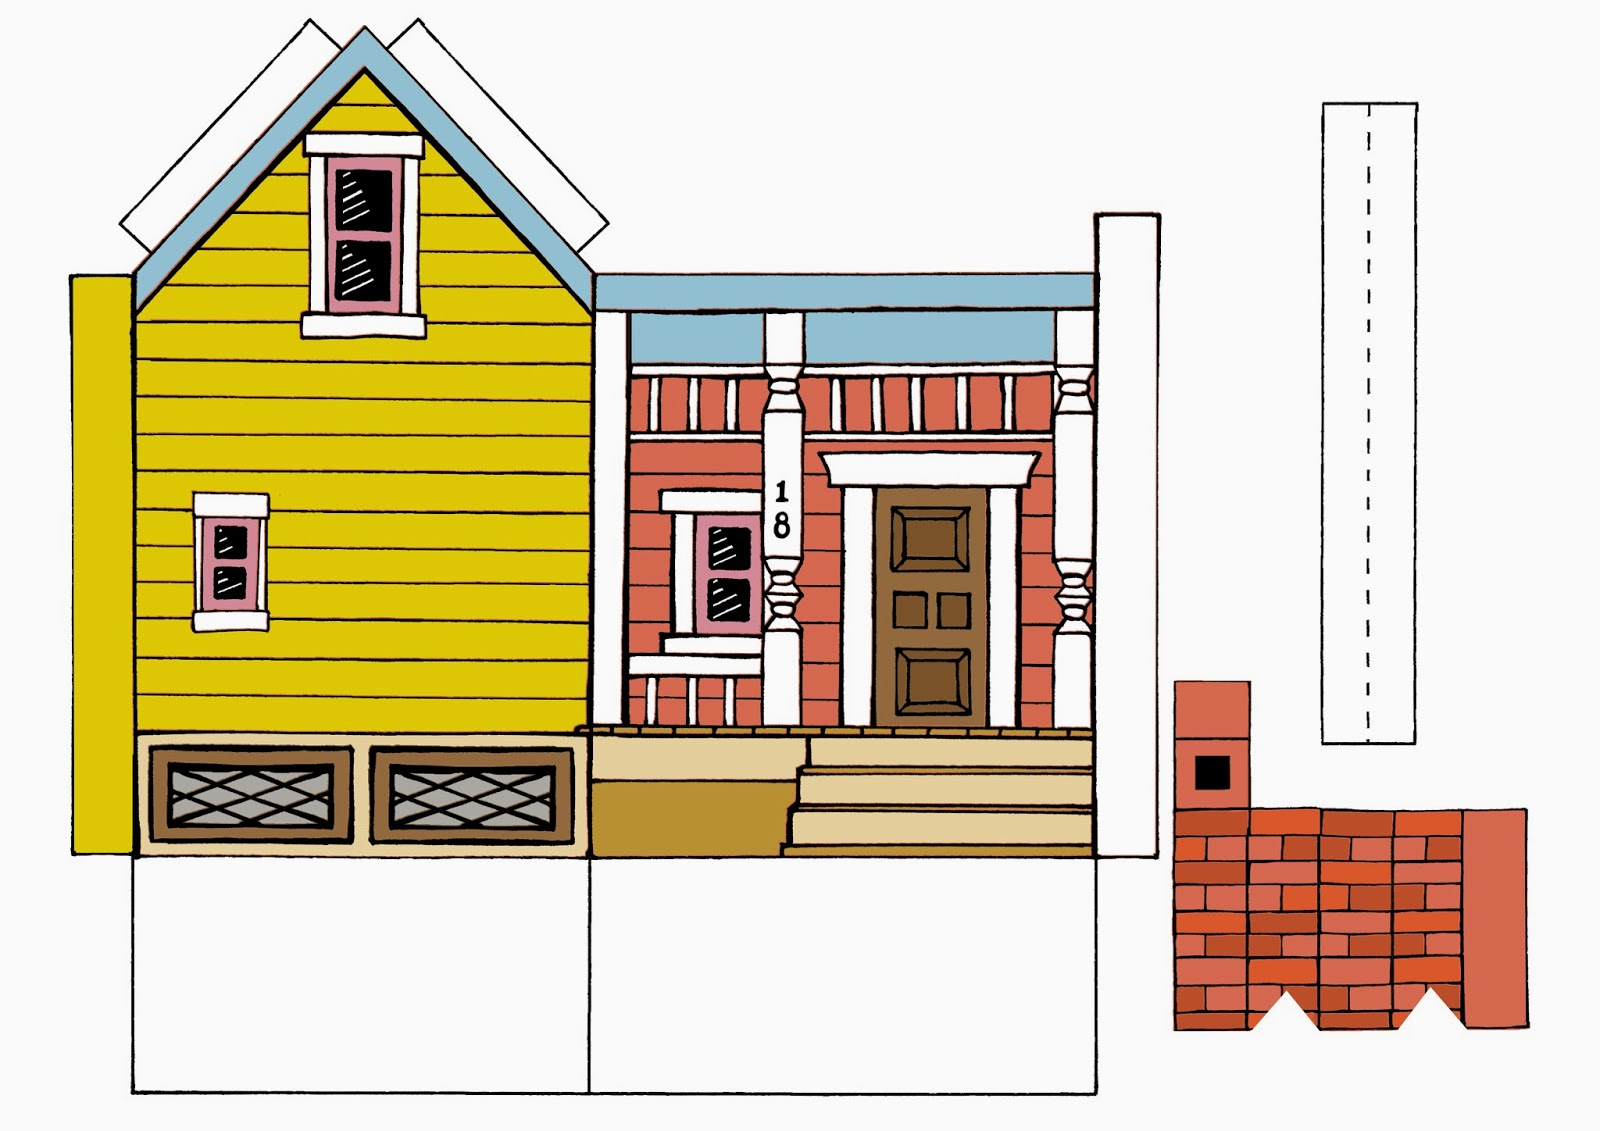 Crush image regarding house from up printable